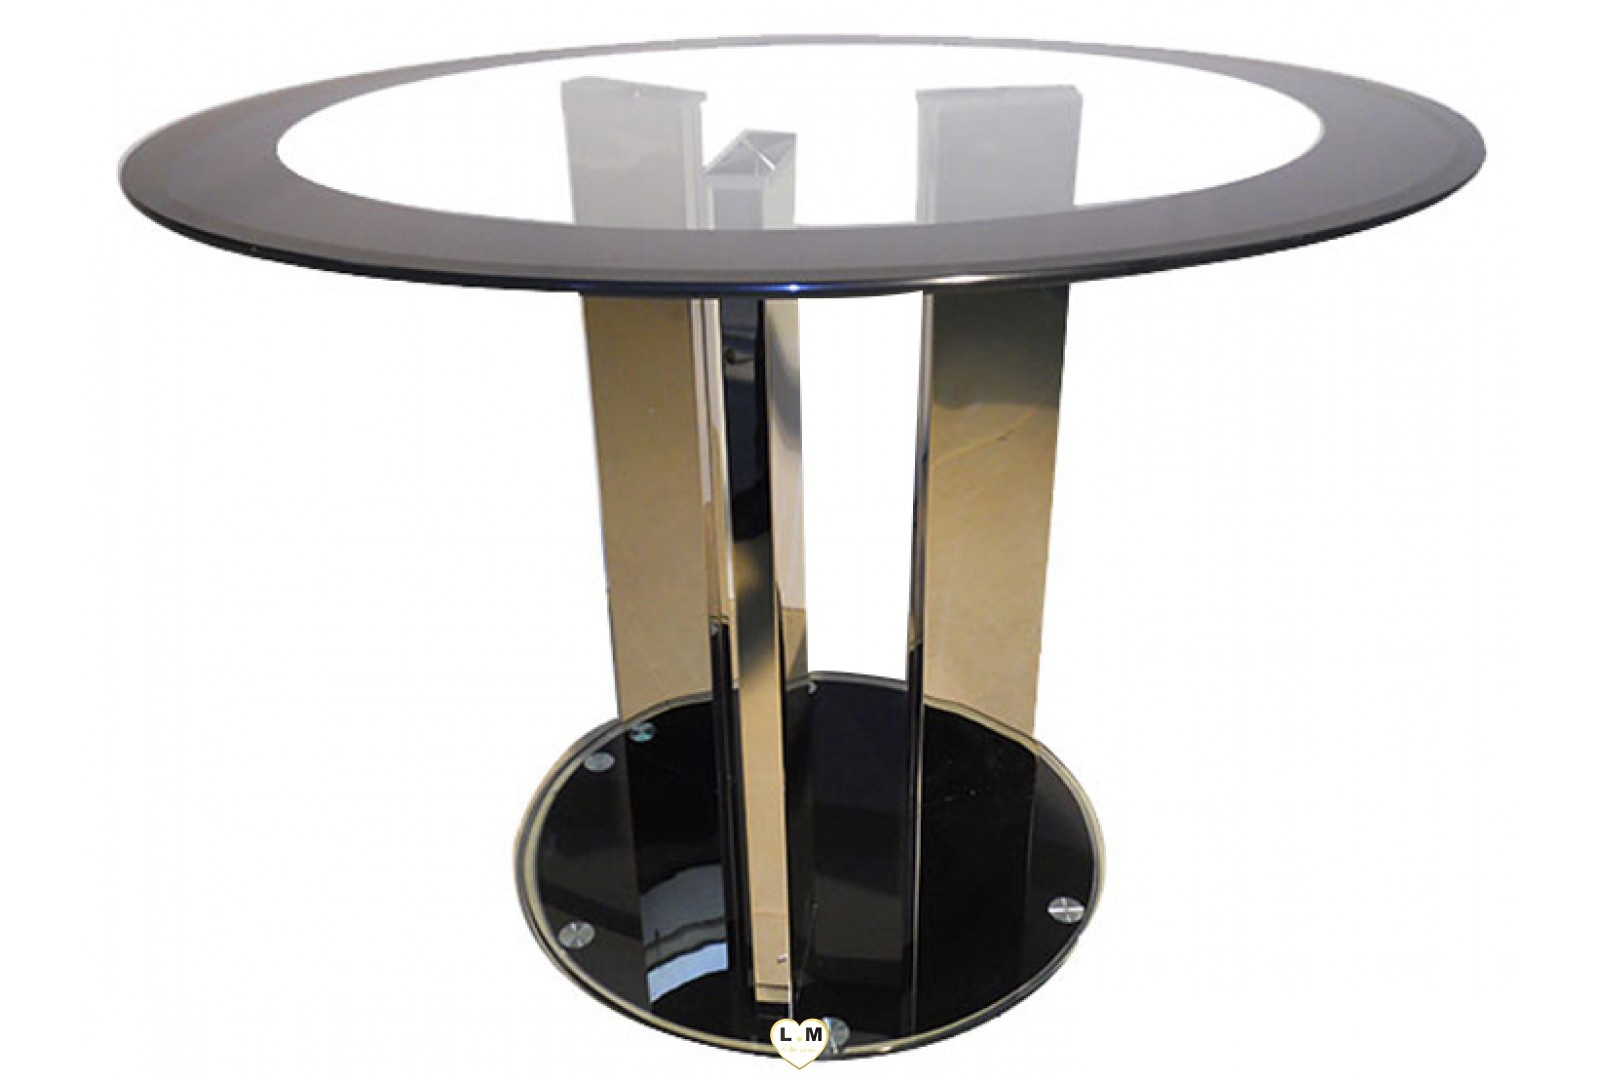 T887 table salle a manger ronde verre transparent for Table salle a manger verre